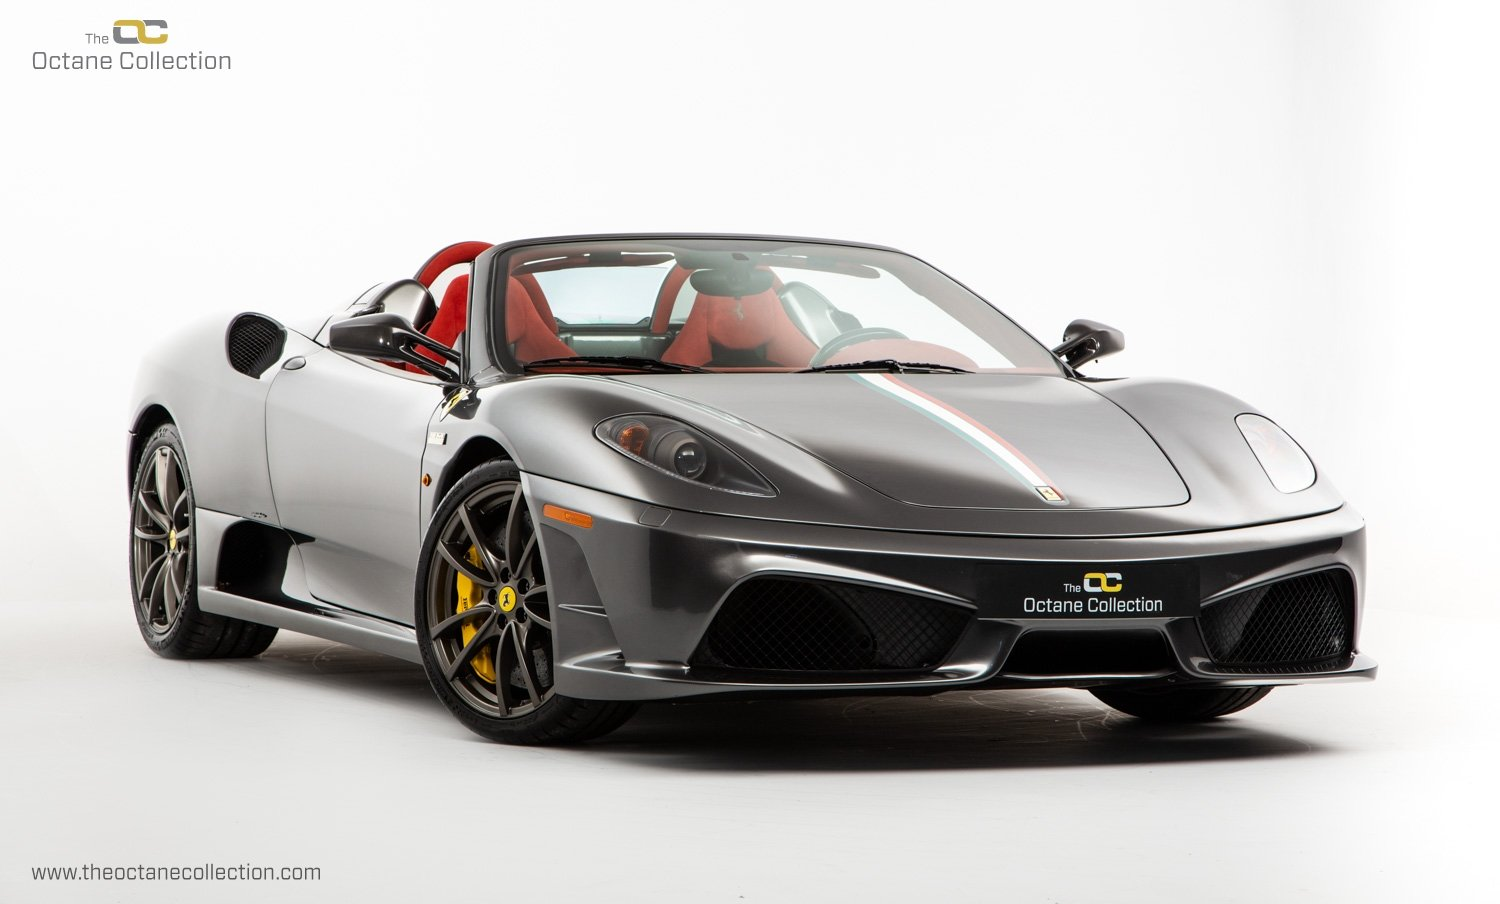 2009 FERRARI 16M SCUDERIA // GRIGIO SILVERSTONE // CARBON FIBRE P For Sale (picture 1 of 20)